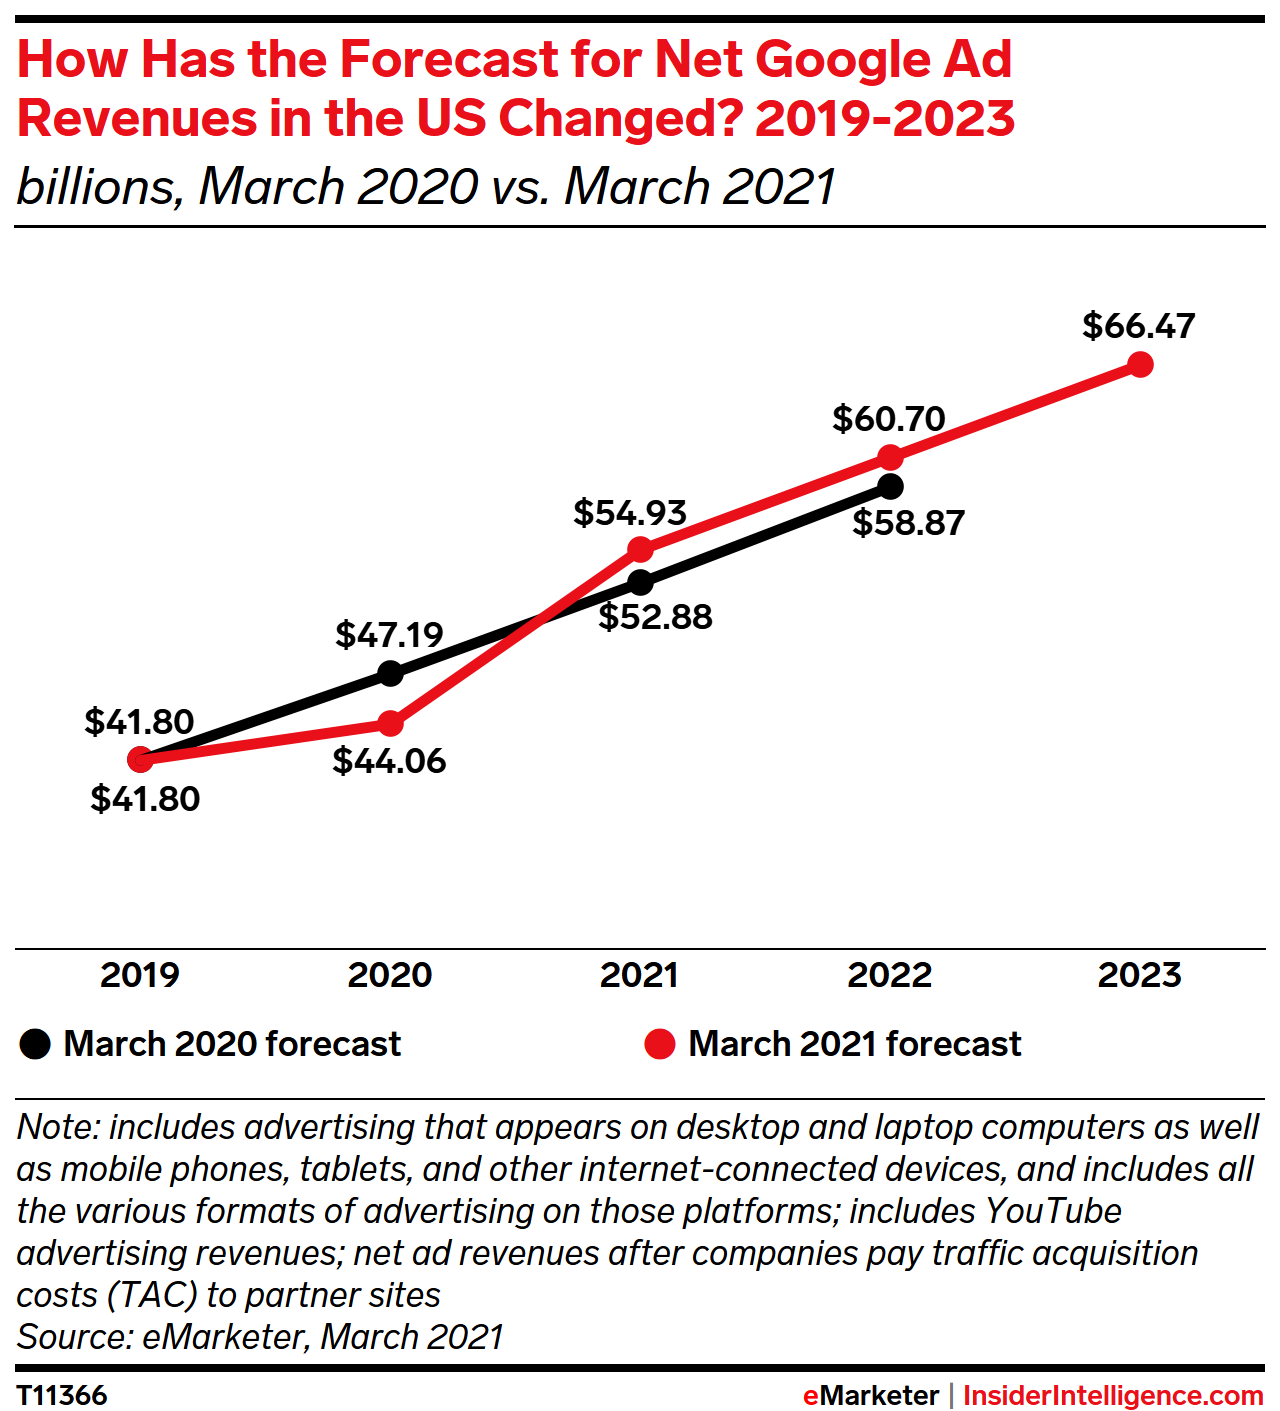 How Has the Forecast for Net Google Ad Revenues in the US Changed? 2019-2023 (billions)